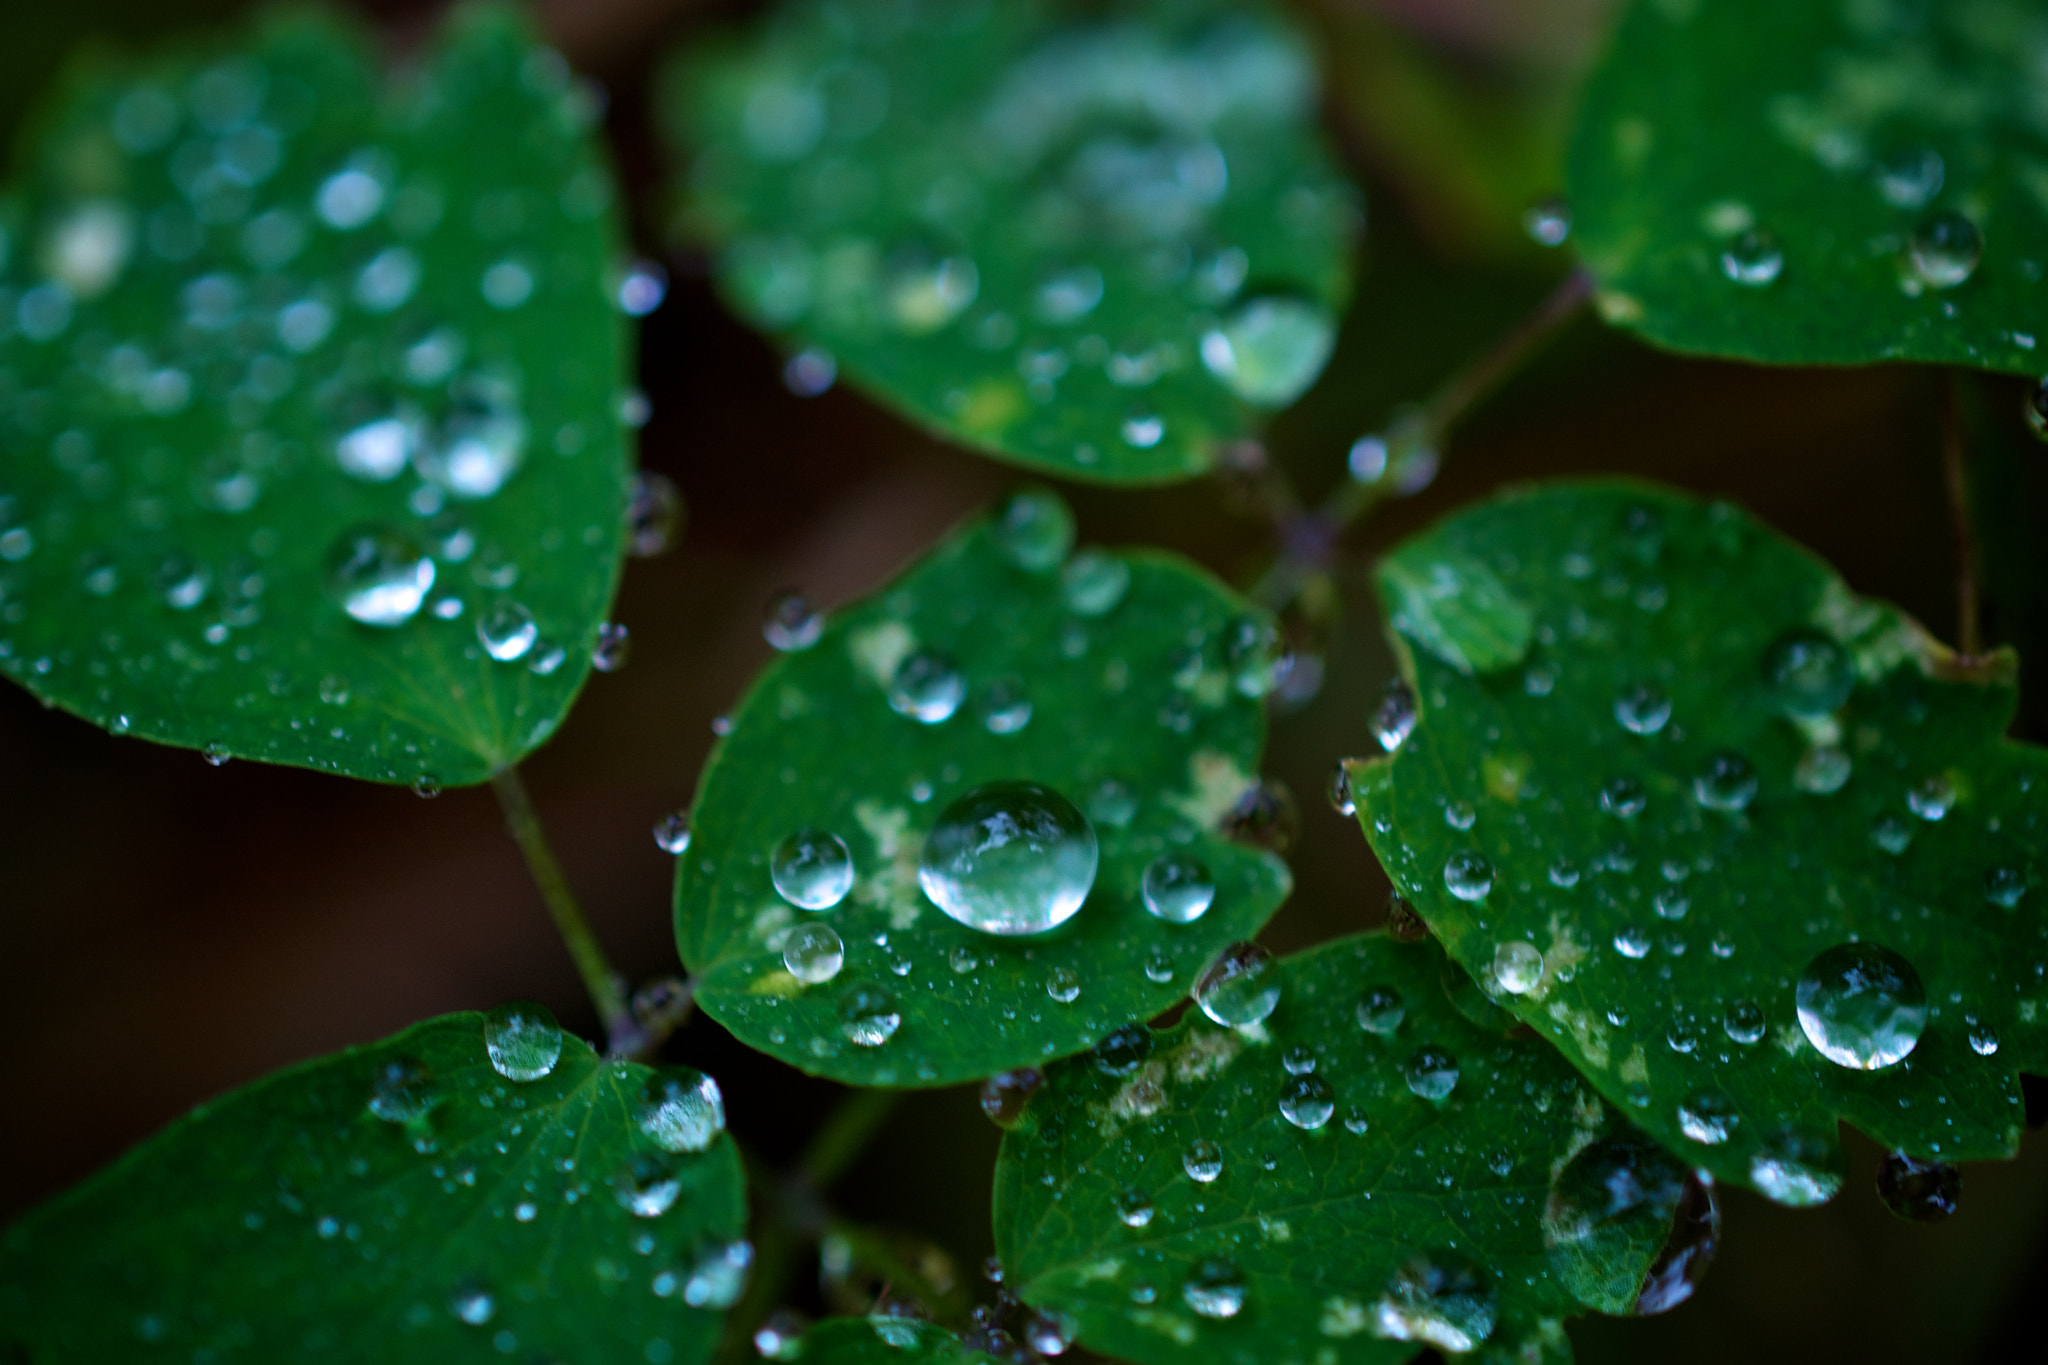 Photograph Dew and Leaves by Cory Zanker on 500px